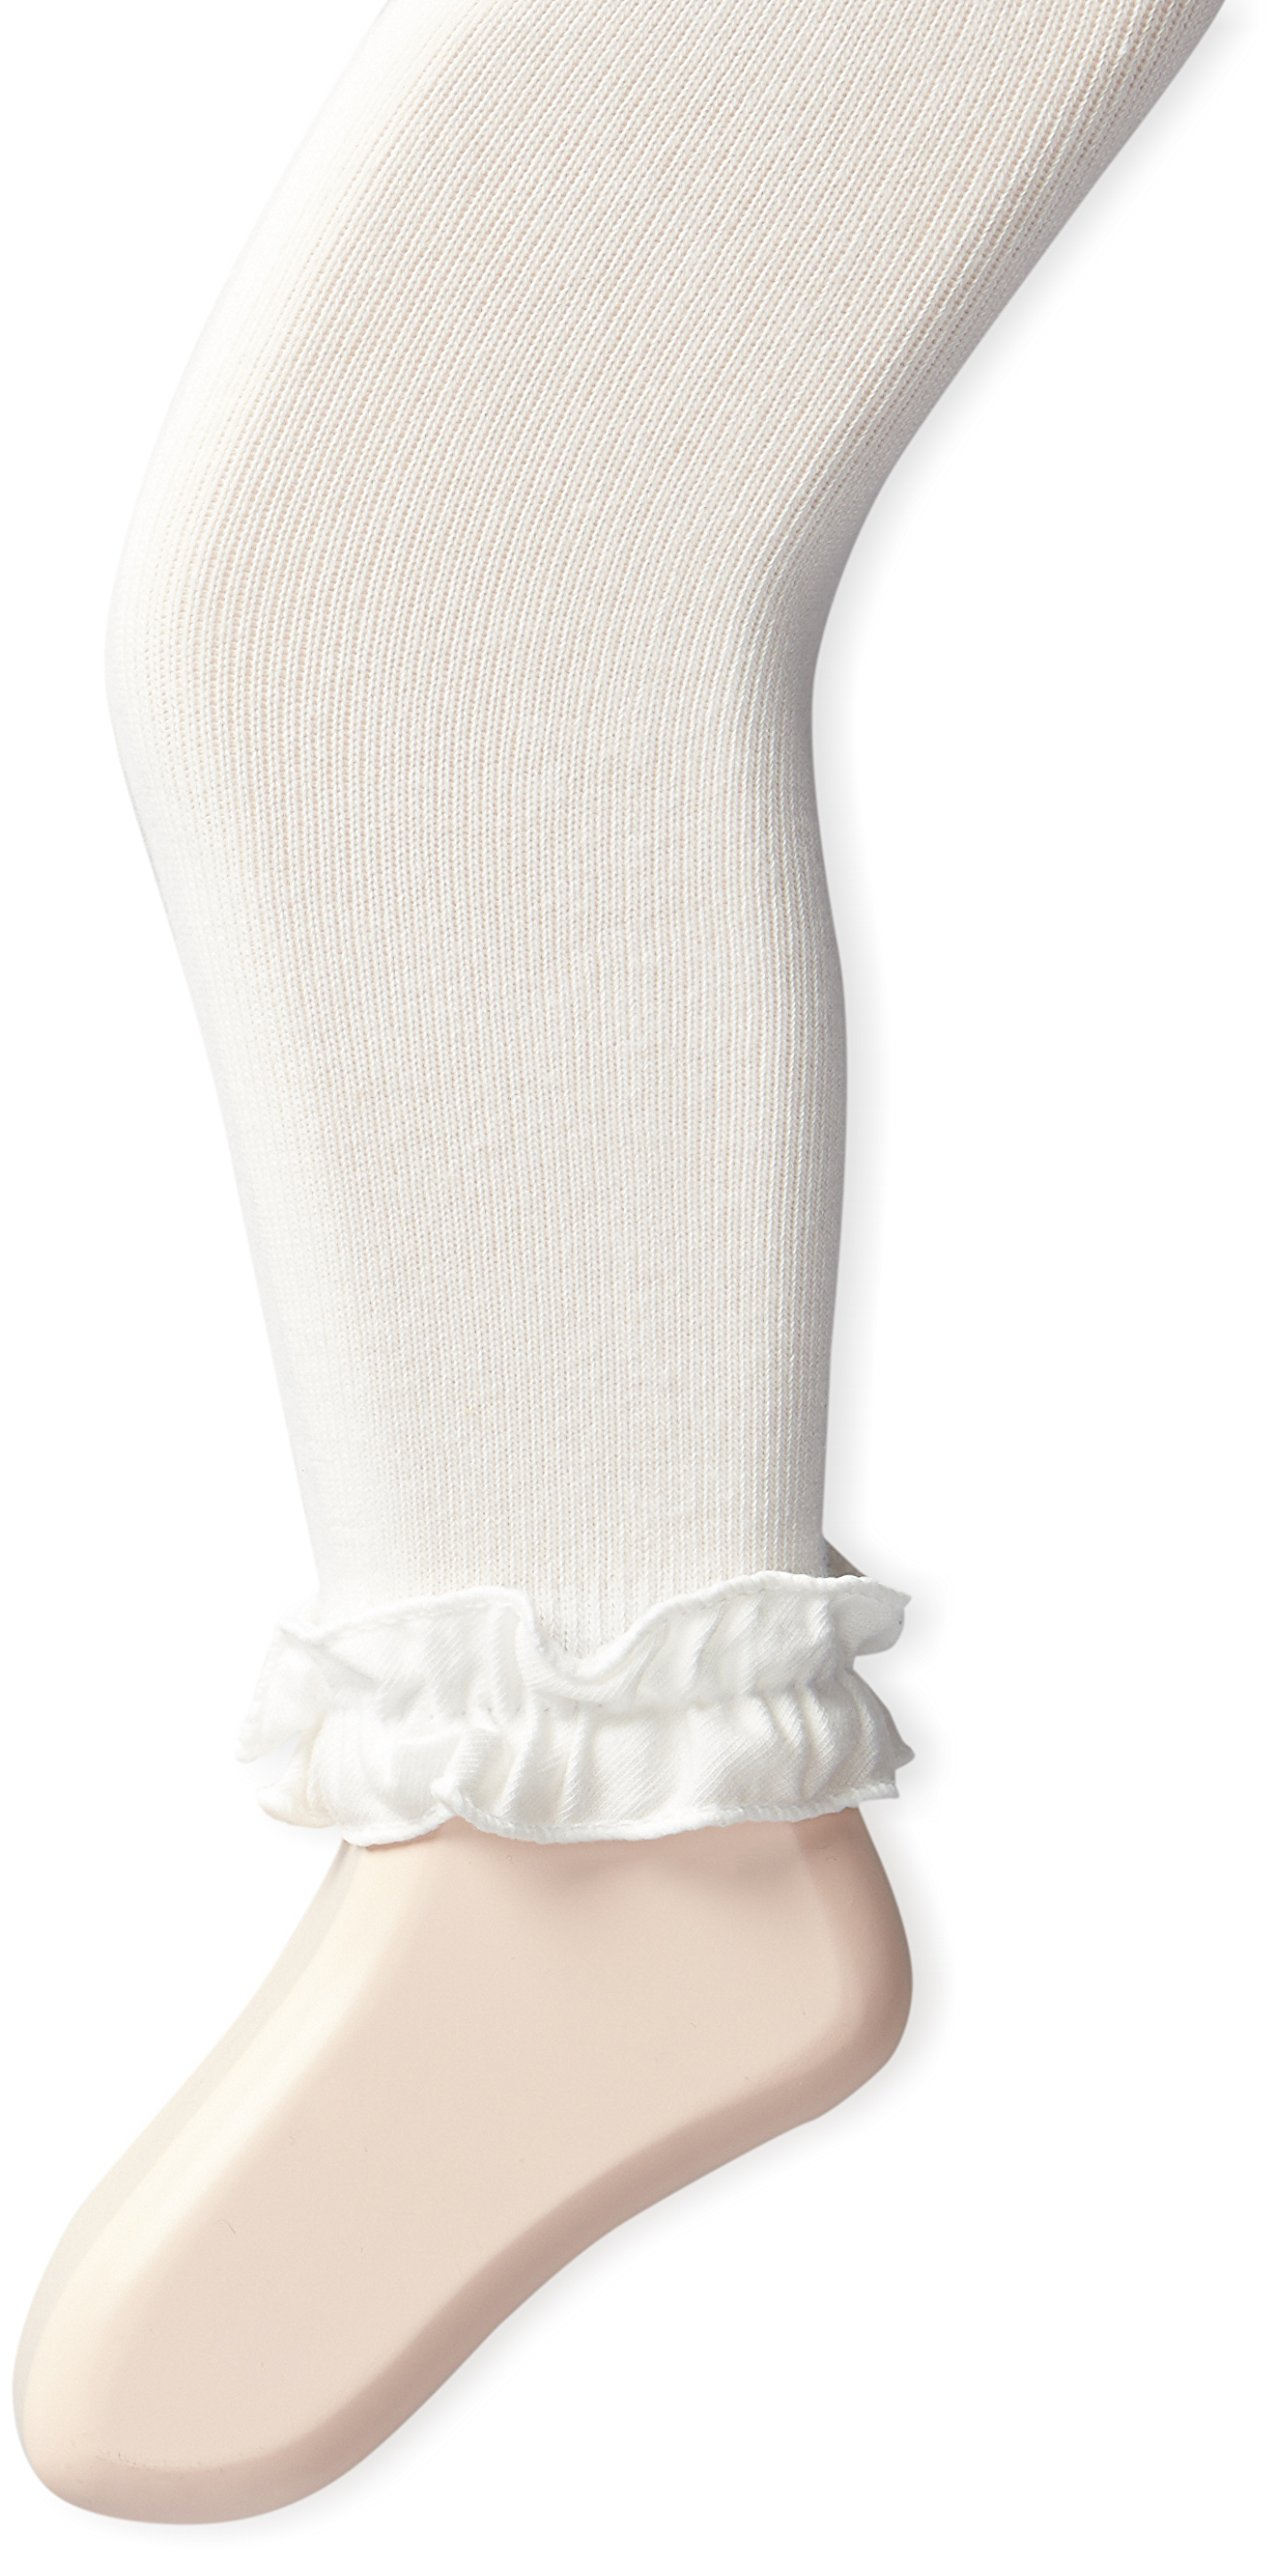 Jefferies Socks Baby Girls' Ruffle Footless Tight, Ivory, 0-6 Months by Jefferies Socks